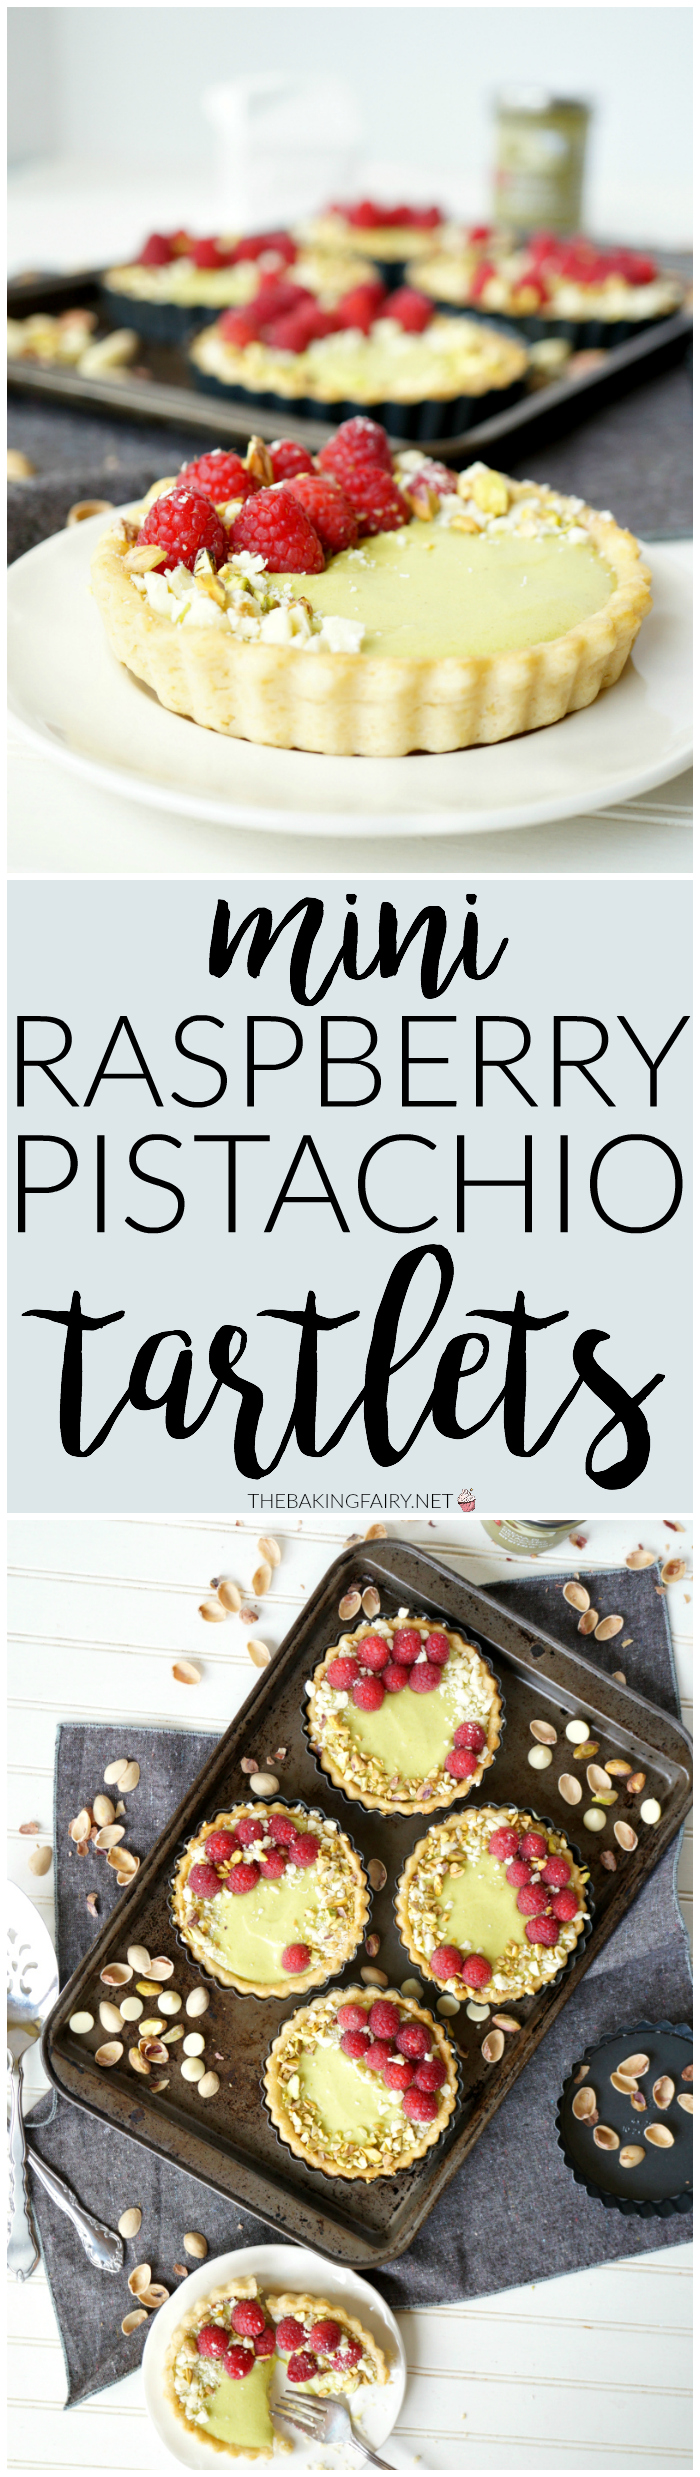 mini raspberry pistachio tartlets | The Baking Fairy